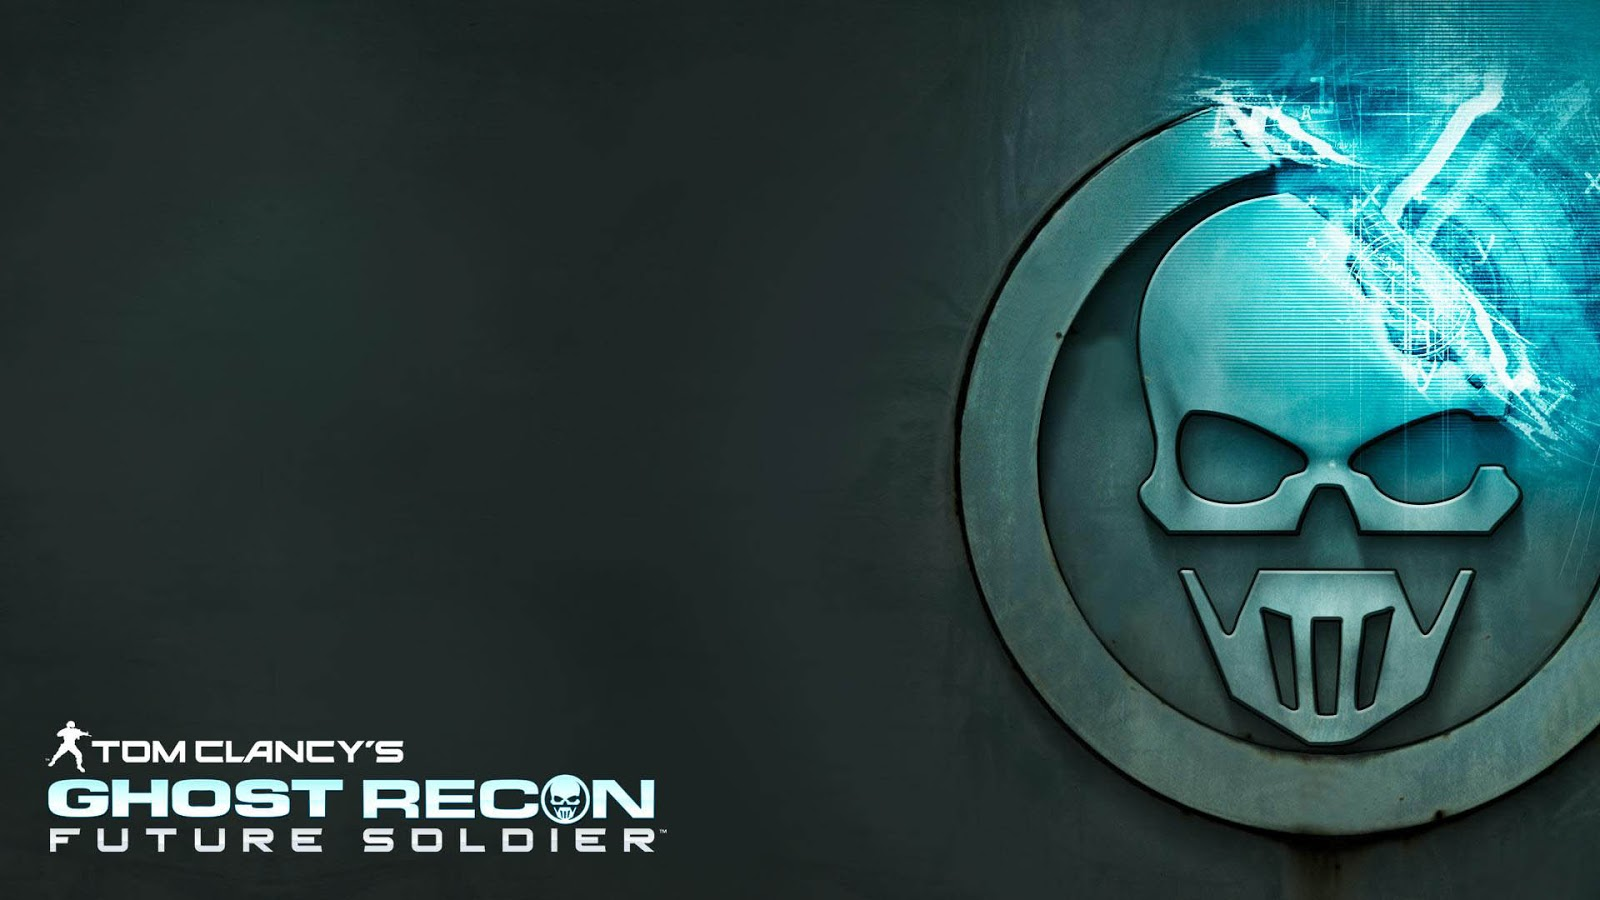 Ghost Recon Future Soldier HD & Widescreen Wallpaper 0.0158683884298592